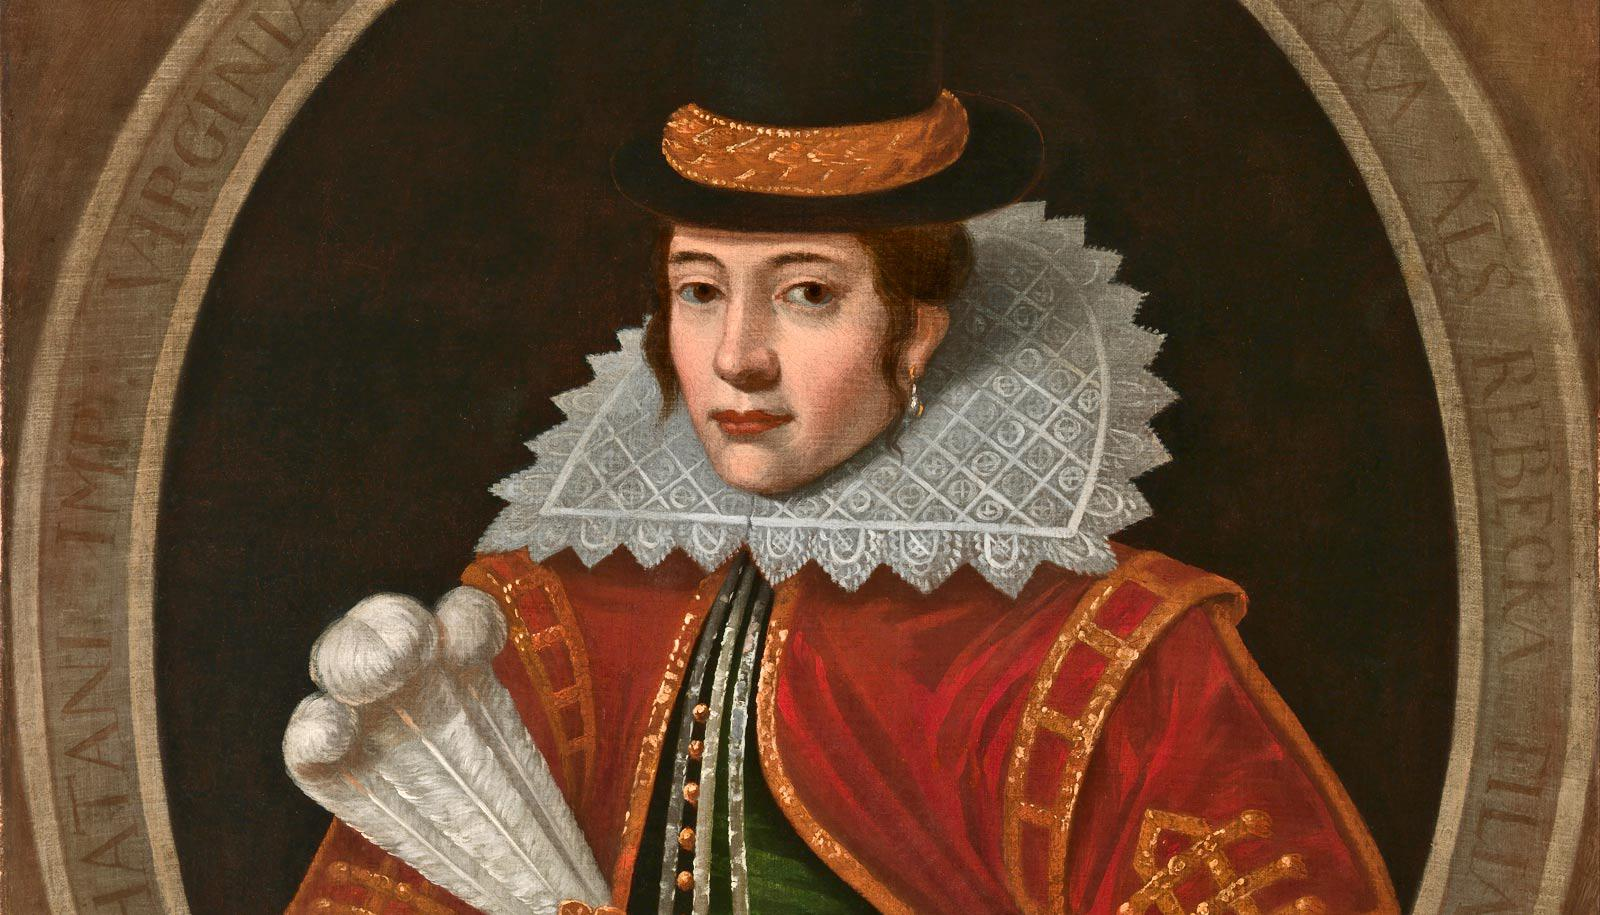 portrait of Pocahontas in English clothing